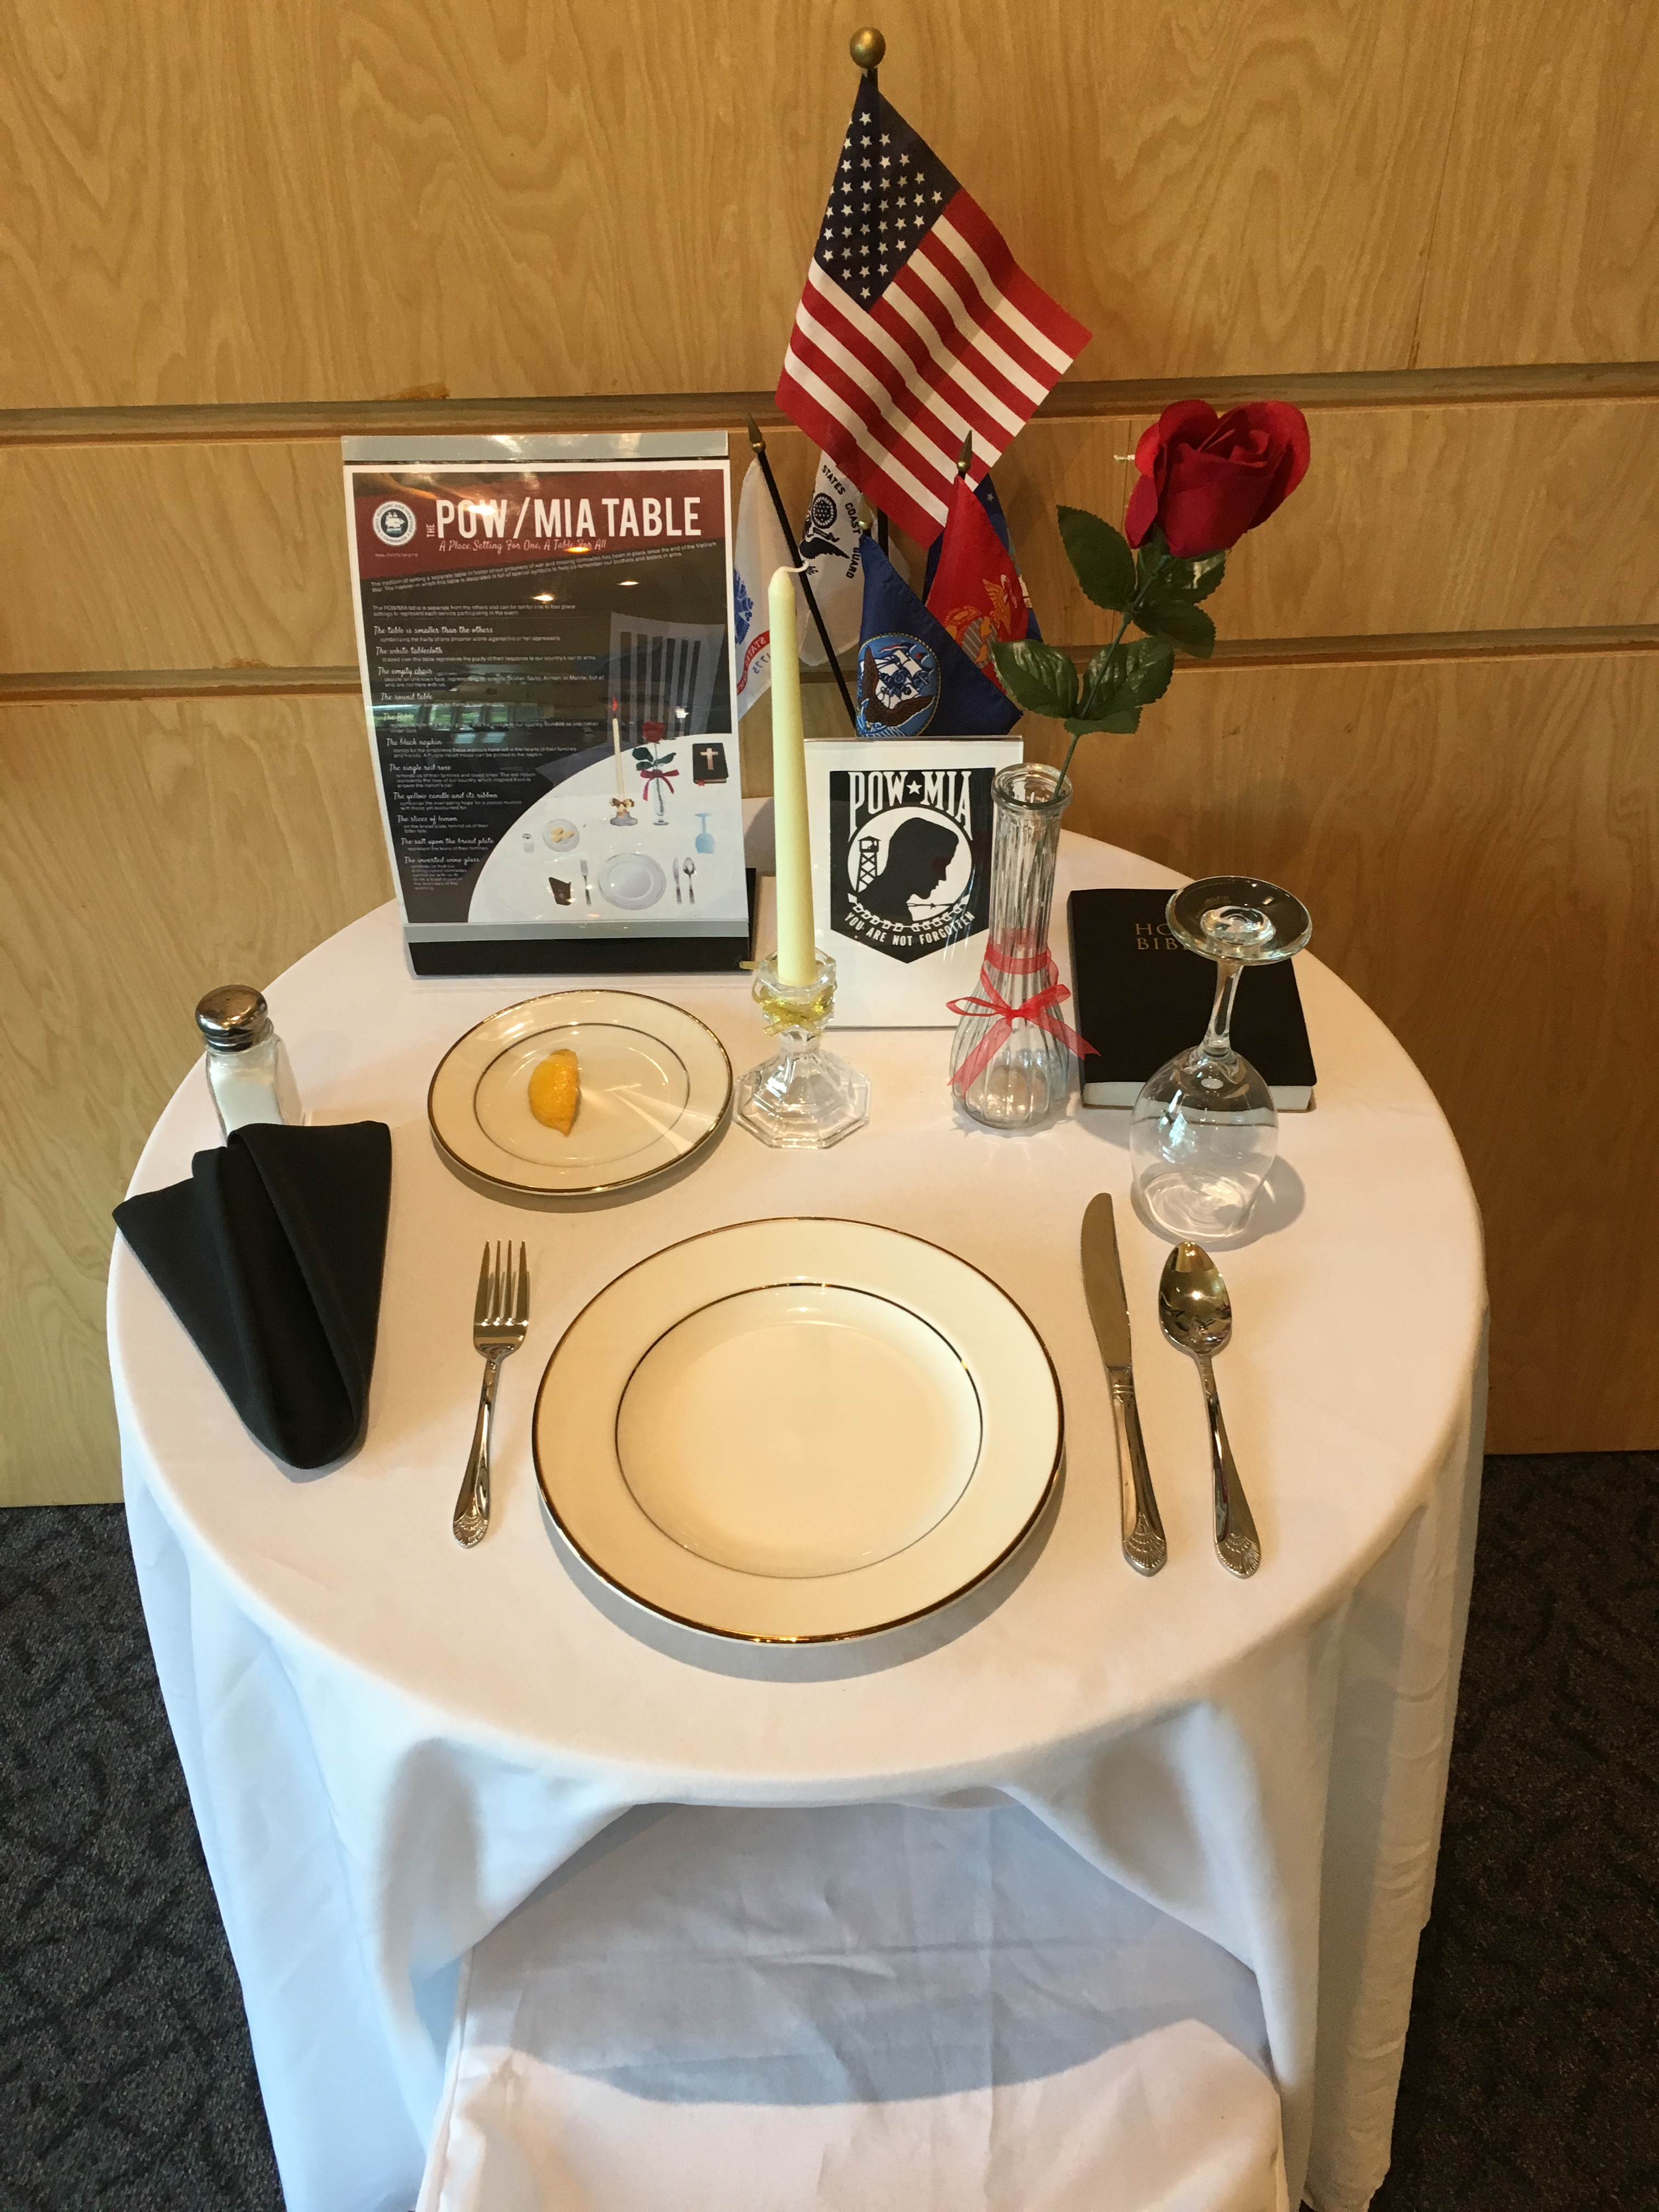 The Naval History and Heritage Command provides an excellent article on the history of the POW/MIA table as well as a description of the items to be found ... & A Place Setting For One A Table For All\u201d \u2013 Naval Order of the US ...